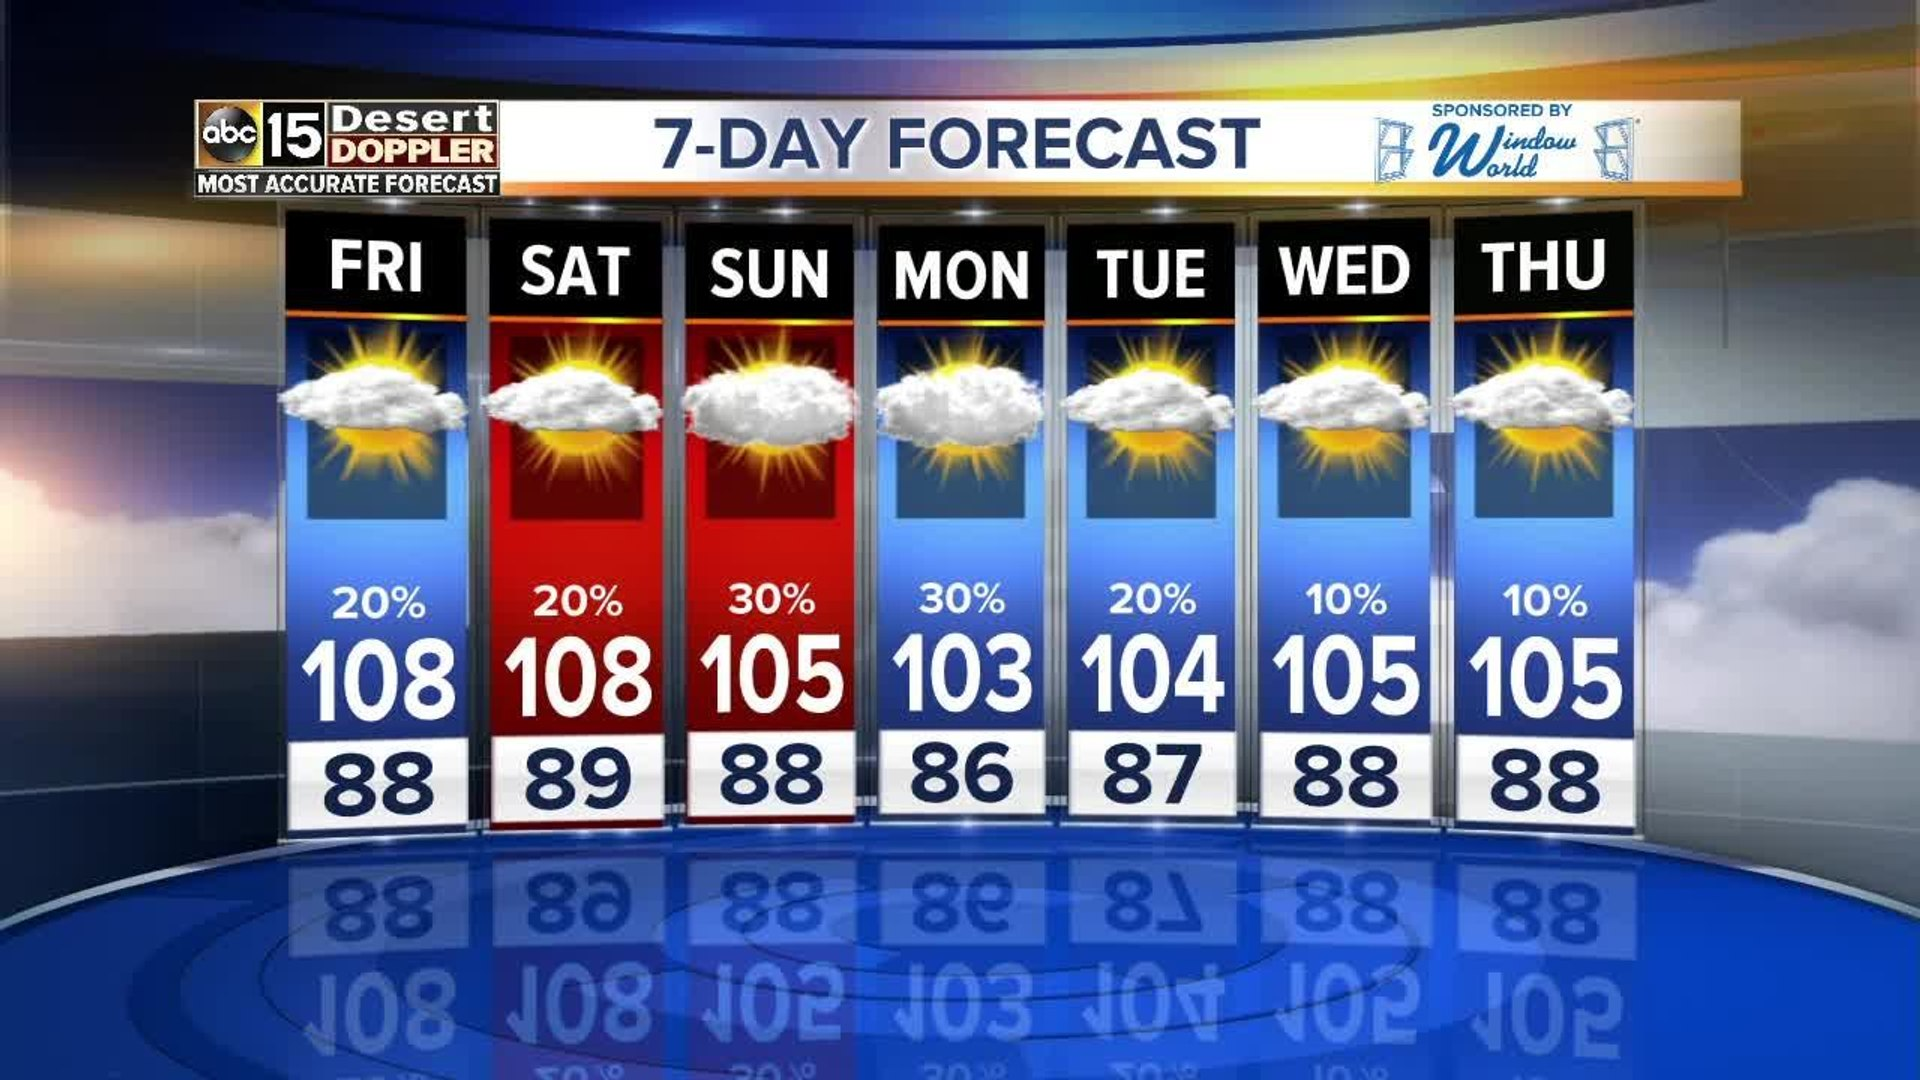 More monsoon storms and a chance for a wet weekend are in the forecast